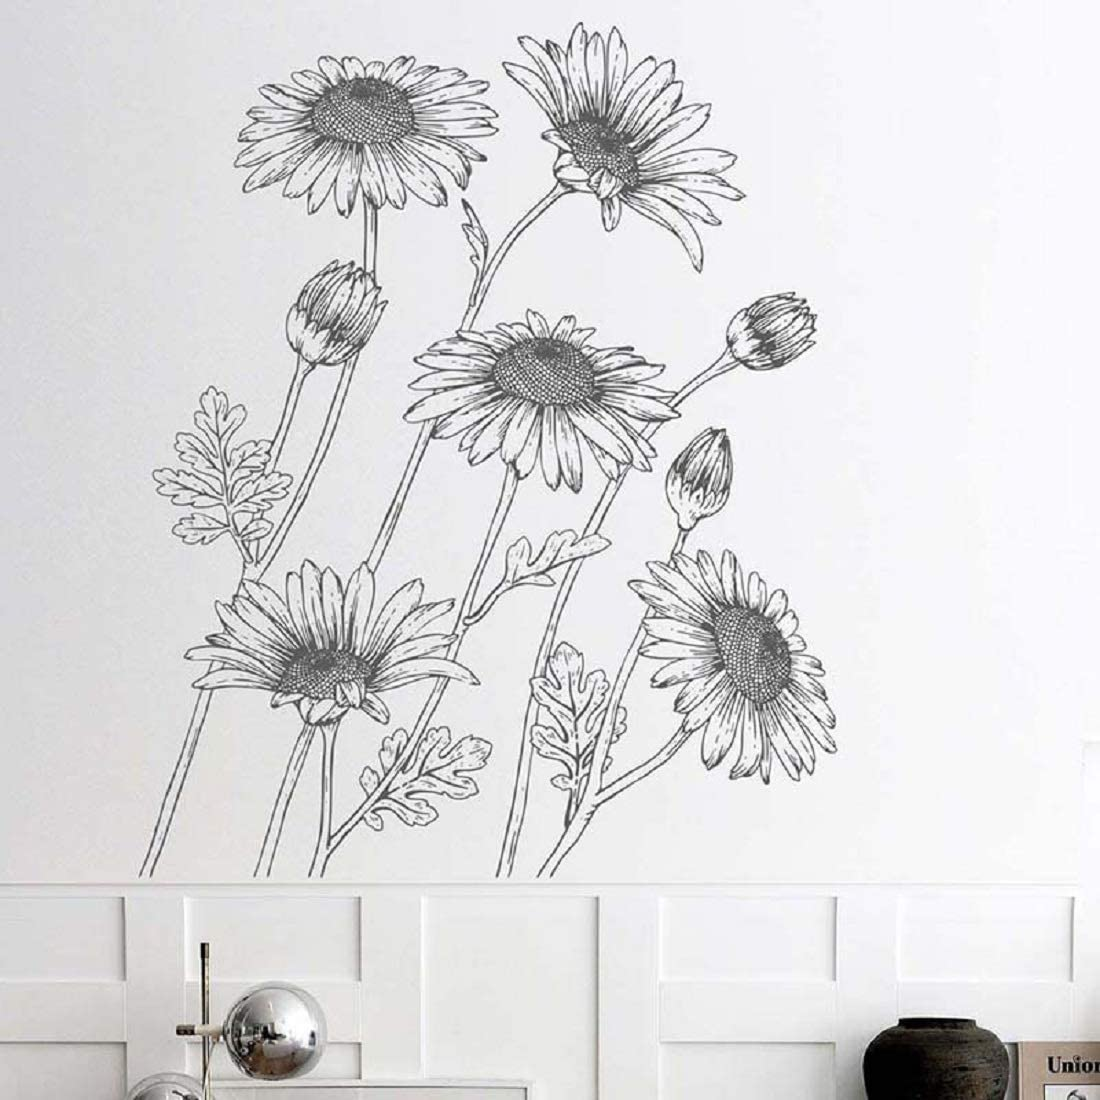 Sunflowers Wall Decals Peel and Stick Stickers Black and White Sketch Art Line Mural Decor for Home Dorm Office Party Nursery